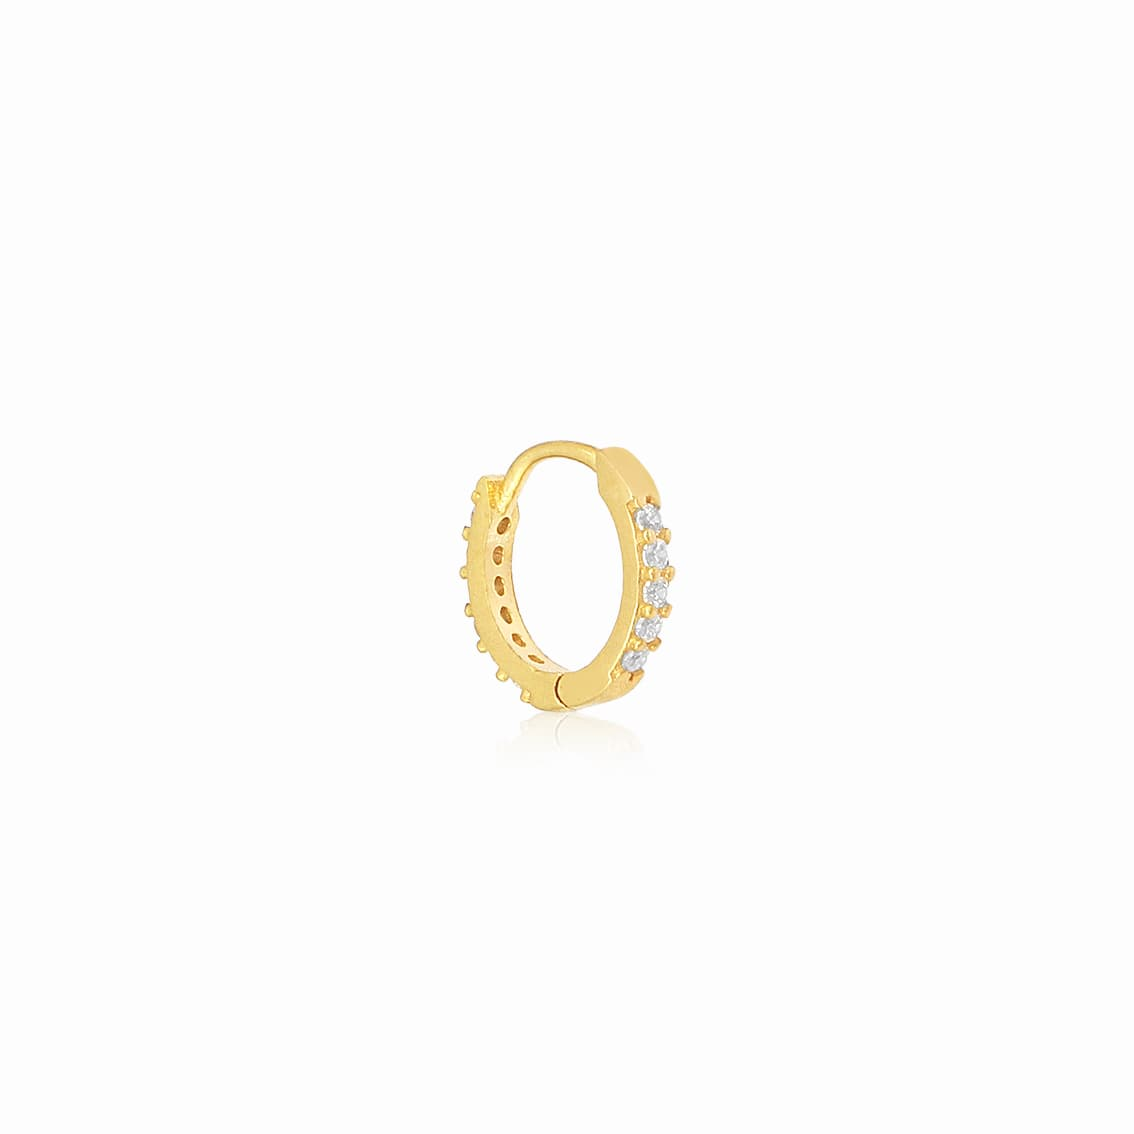 Gold plated cartilage earring models